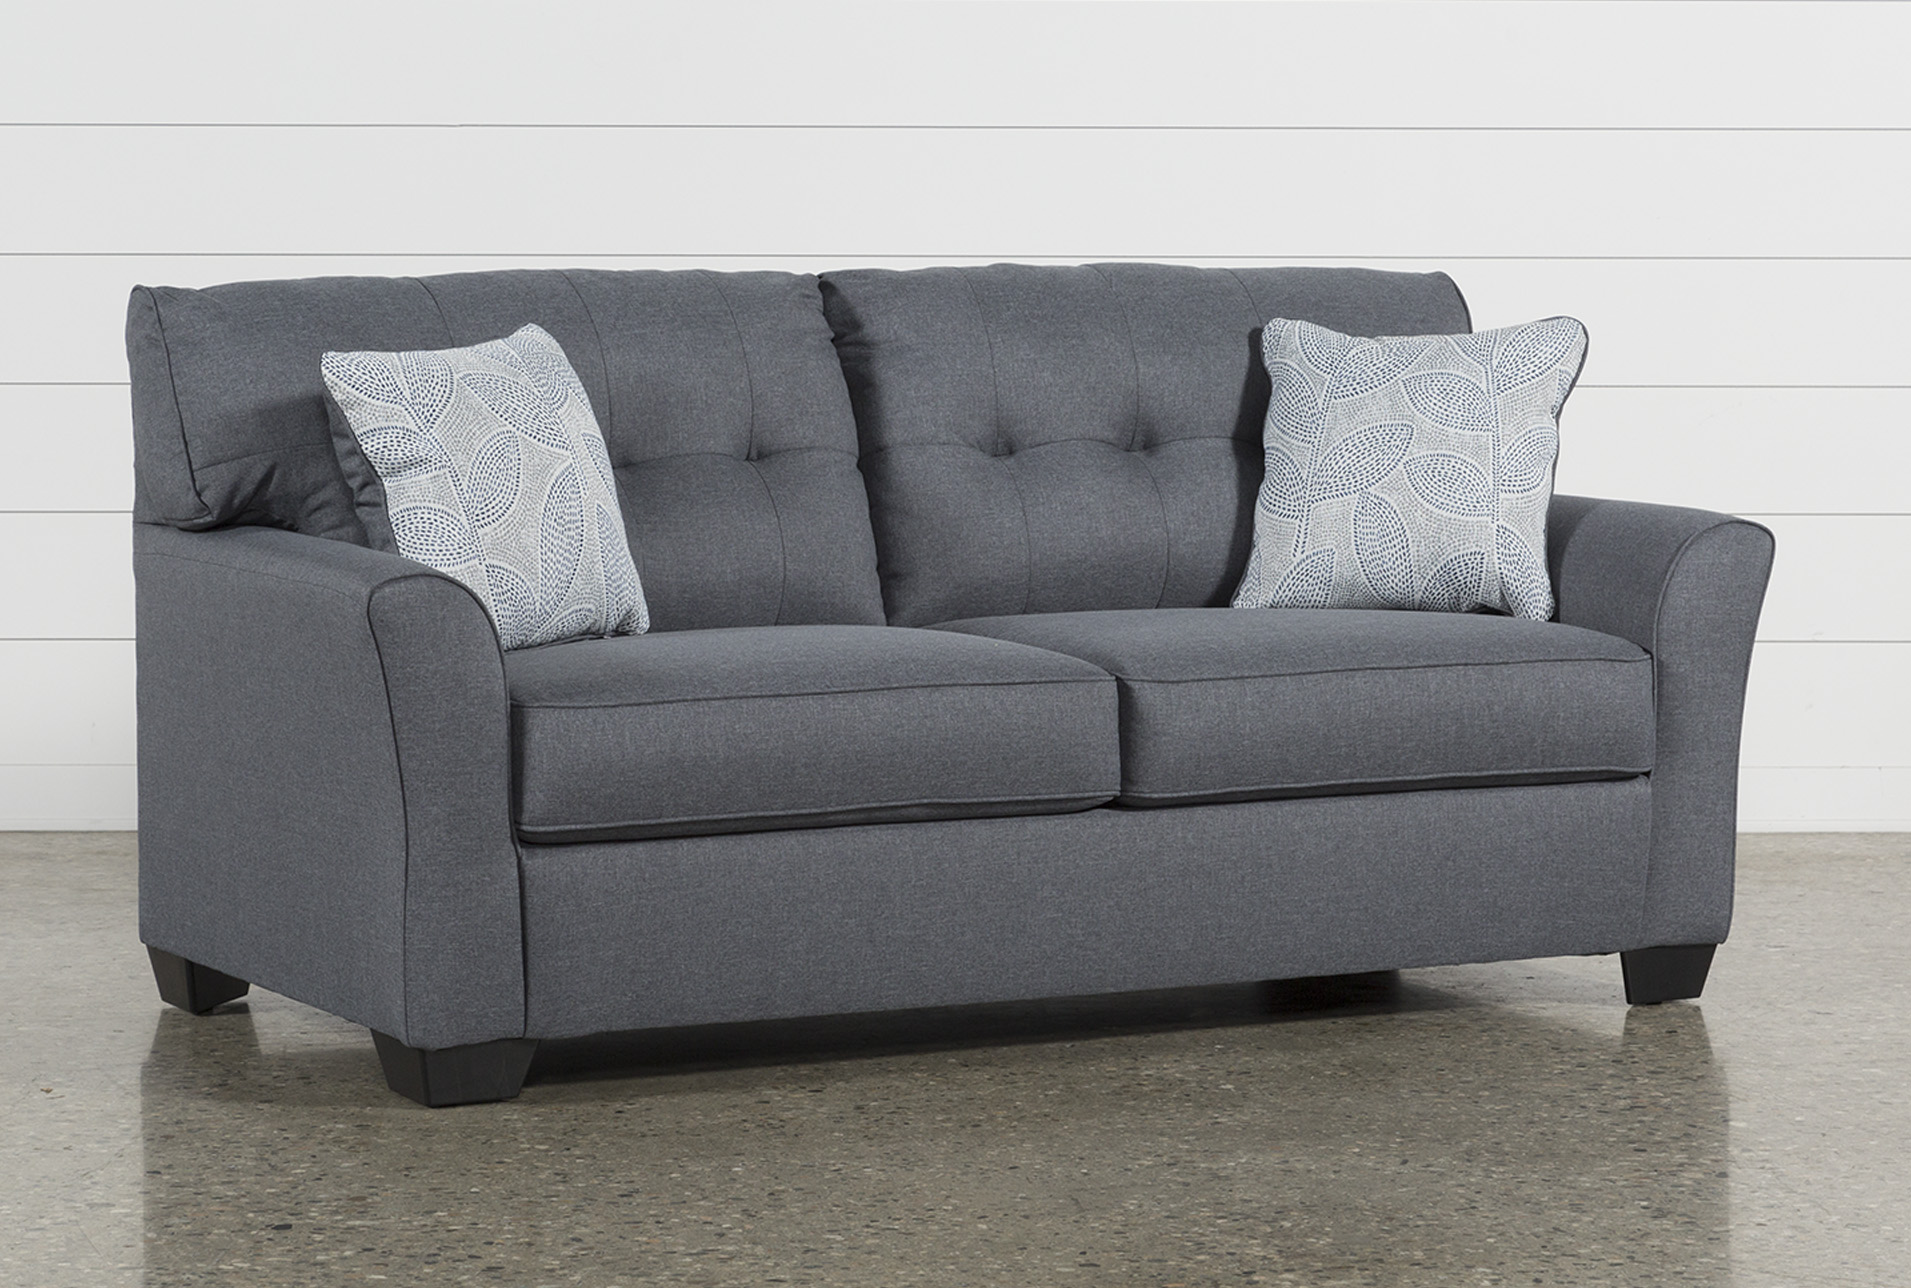 Couches Sleeper Jacoby Gunmetal Full Sofa Sleeper